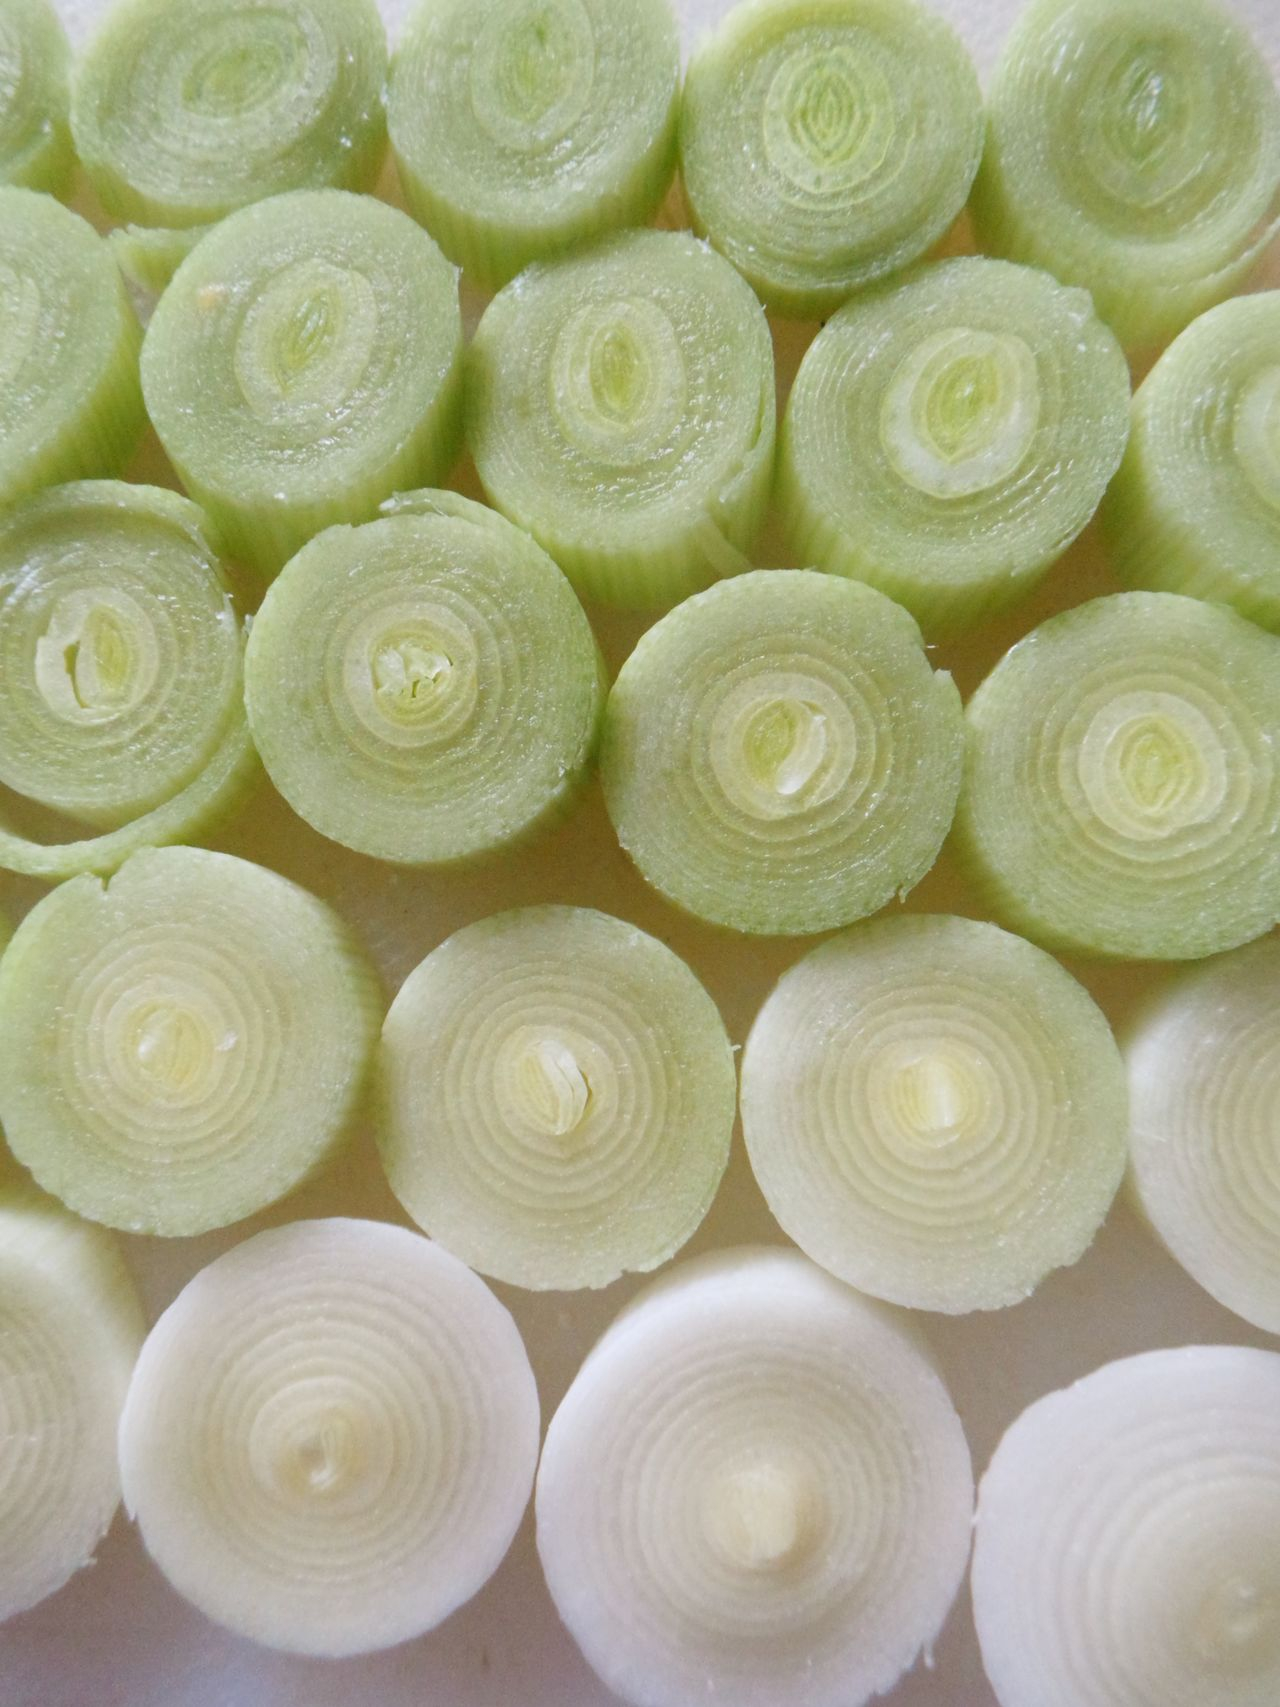 Backgrounds Beautifully Organized Close Up Close-up Cut Leeks Cut Vegetables Day Detail Food Food Photography Food Preparation Fresh Freshness Freshness Full Frame Green Green Color Green Color Leeks Maximum Closeness No People Pattern Raw Raw Food Vegetable